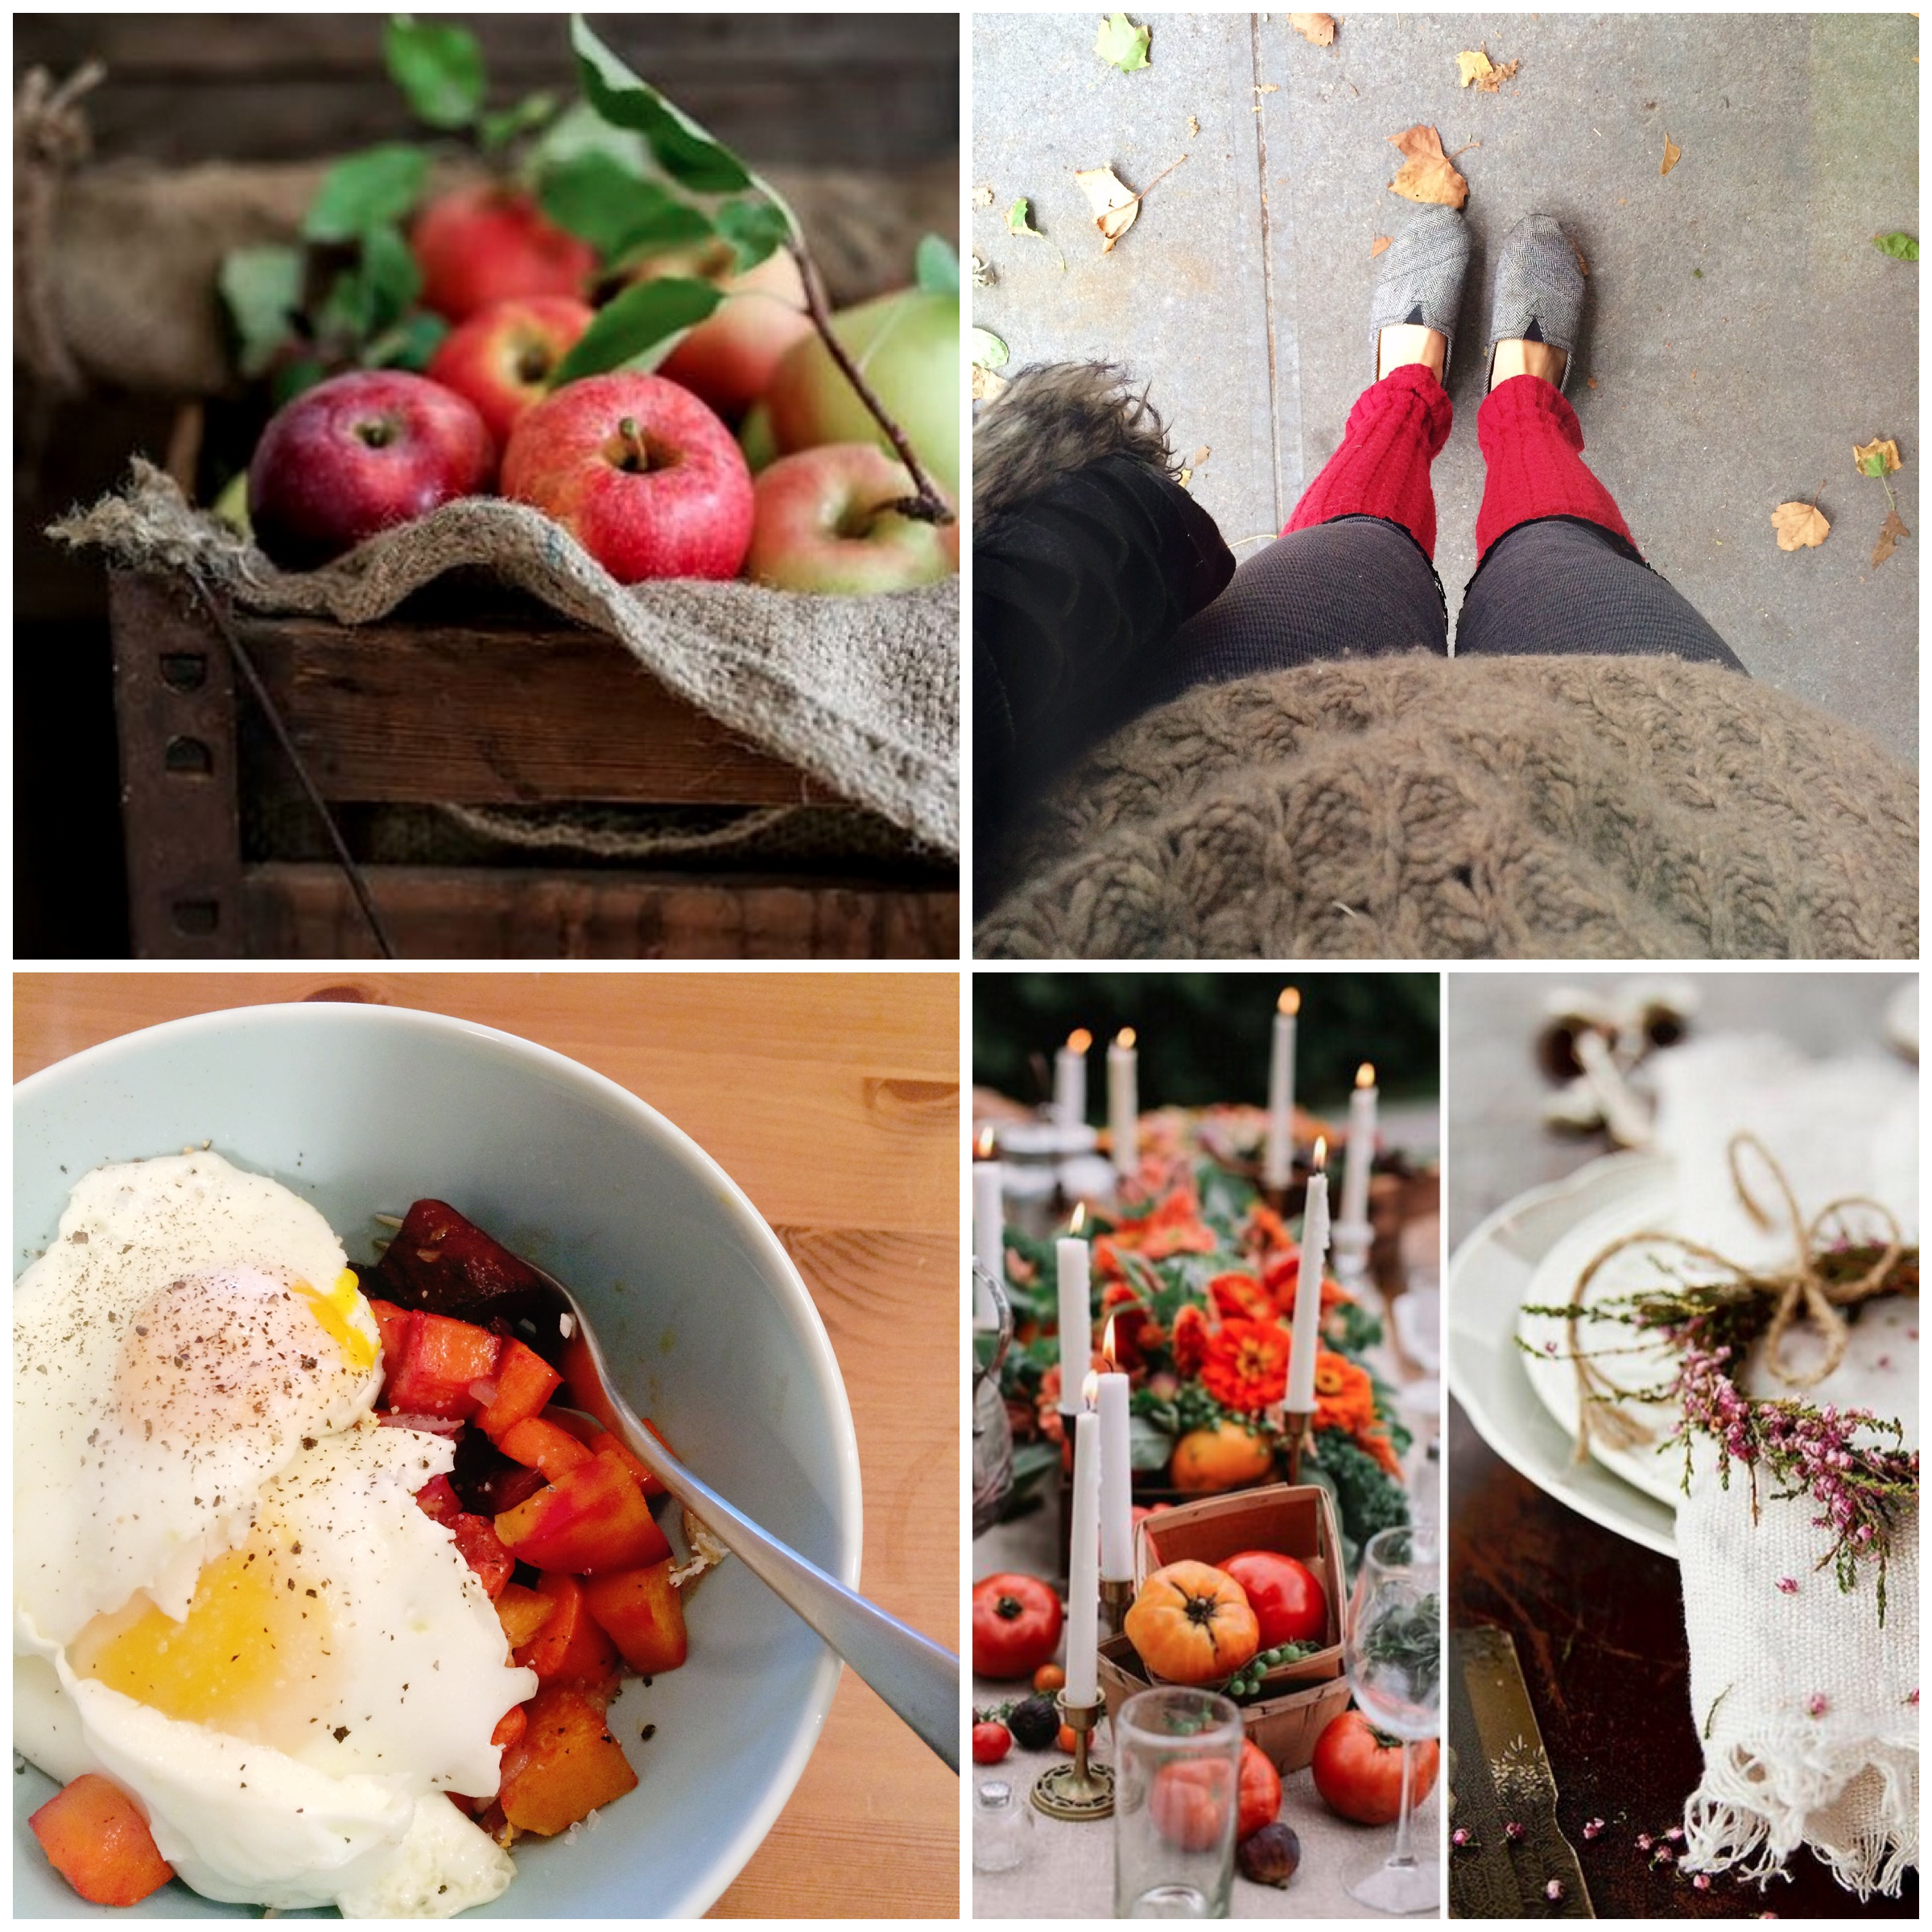 Top left: yummy fall apples! Top right: en route to my local coffee shop this morning to put the finishing touches on something new ;) Bottom left: A delicious fall hash I whipped up over the weekend with a girlfriend. Out of this world. Bottom right: Fall table setting inspiration. Love.